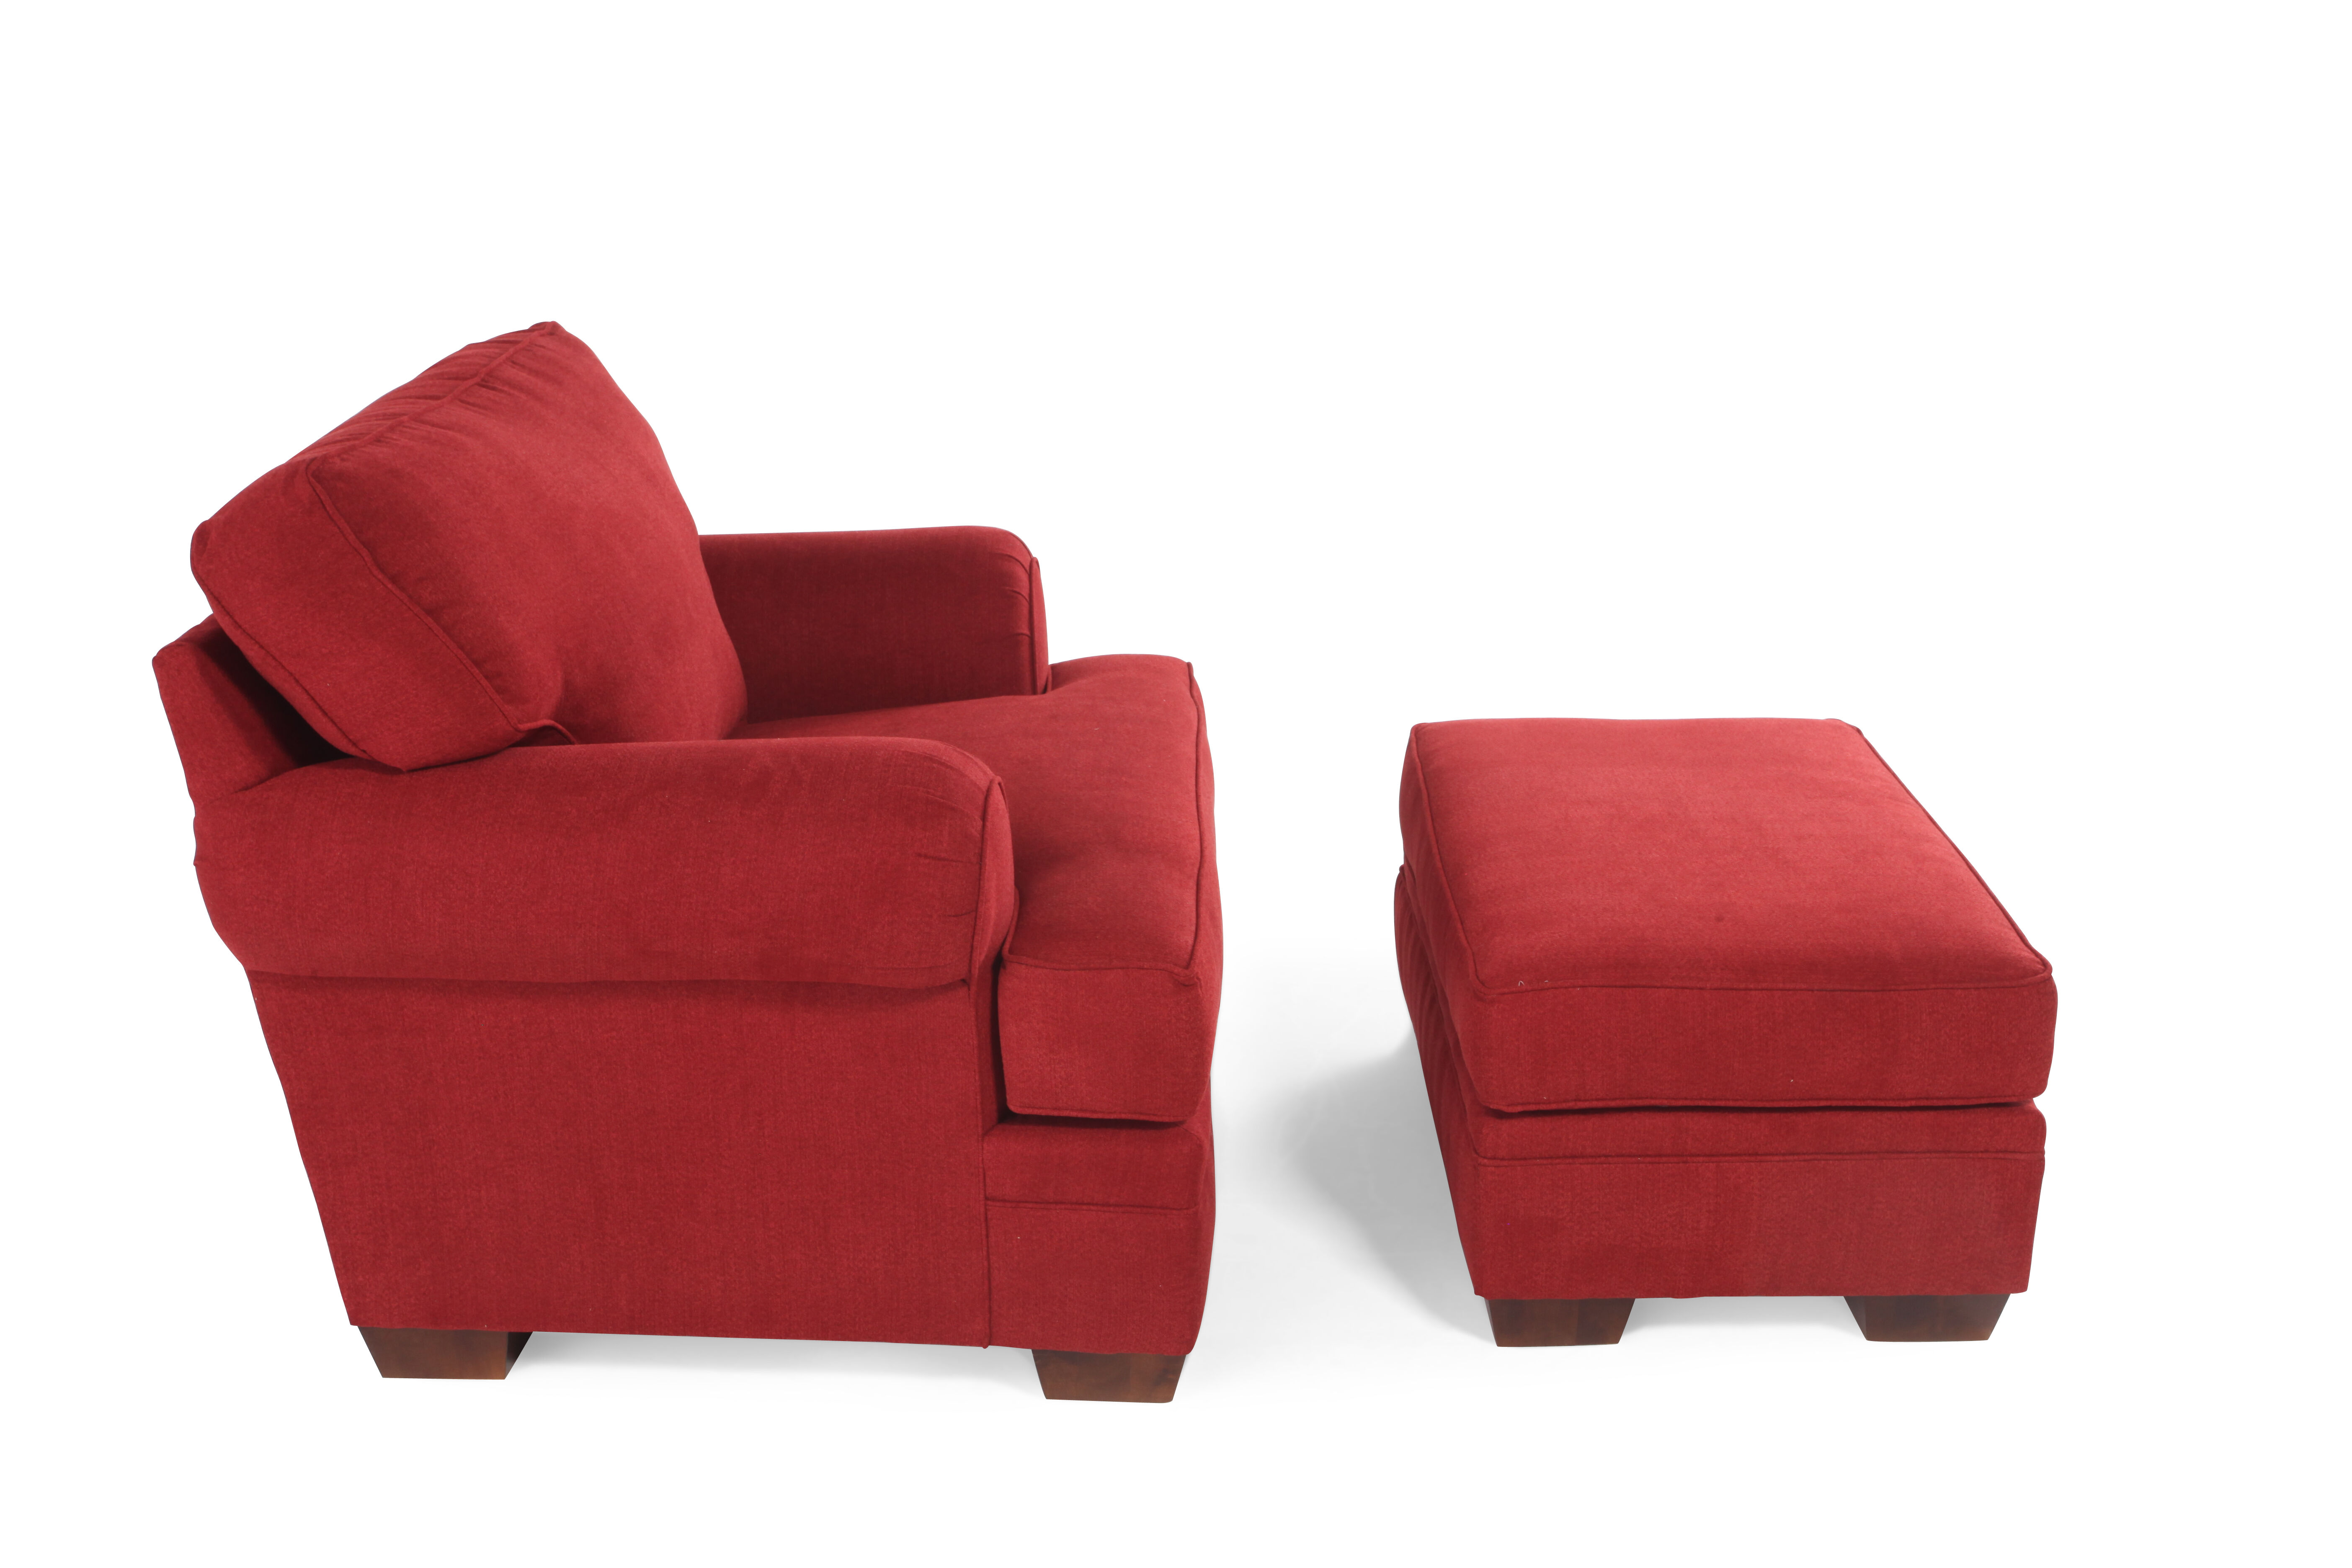 Genial Traditional Chair And Ottoman In Red